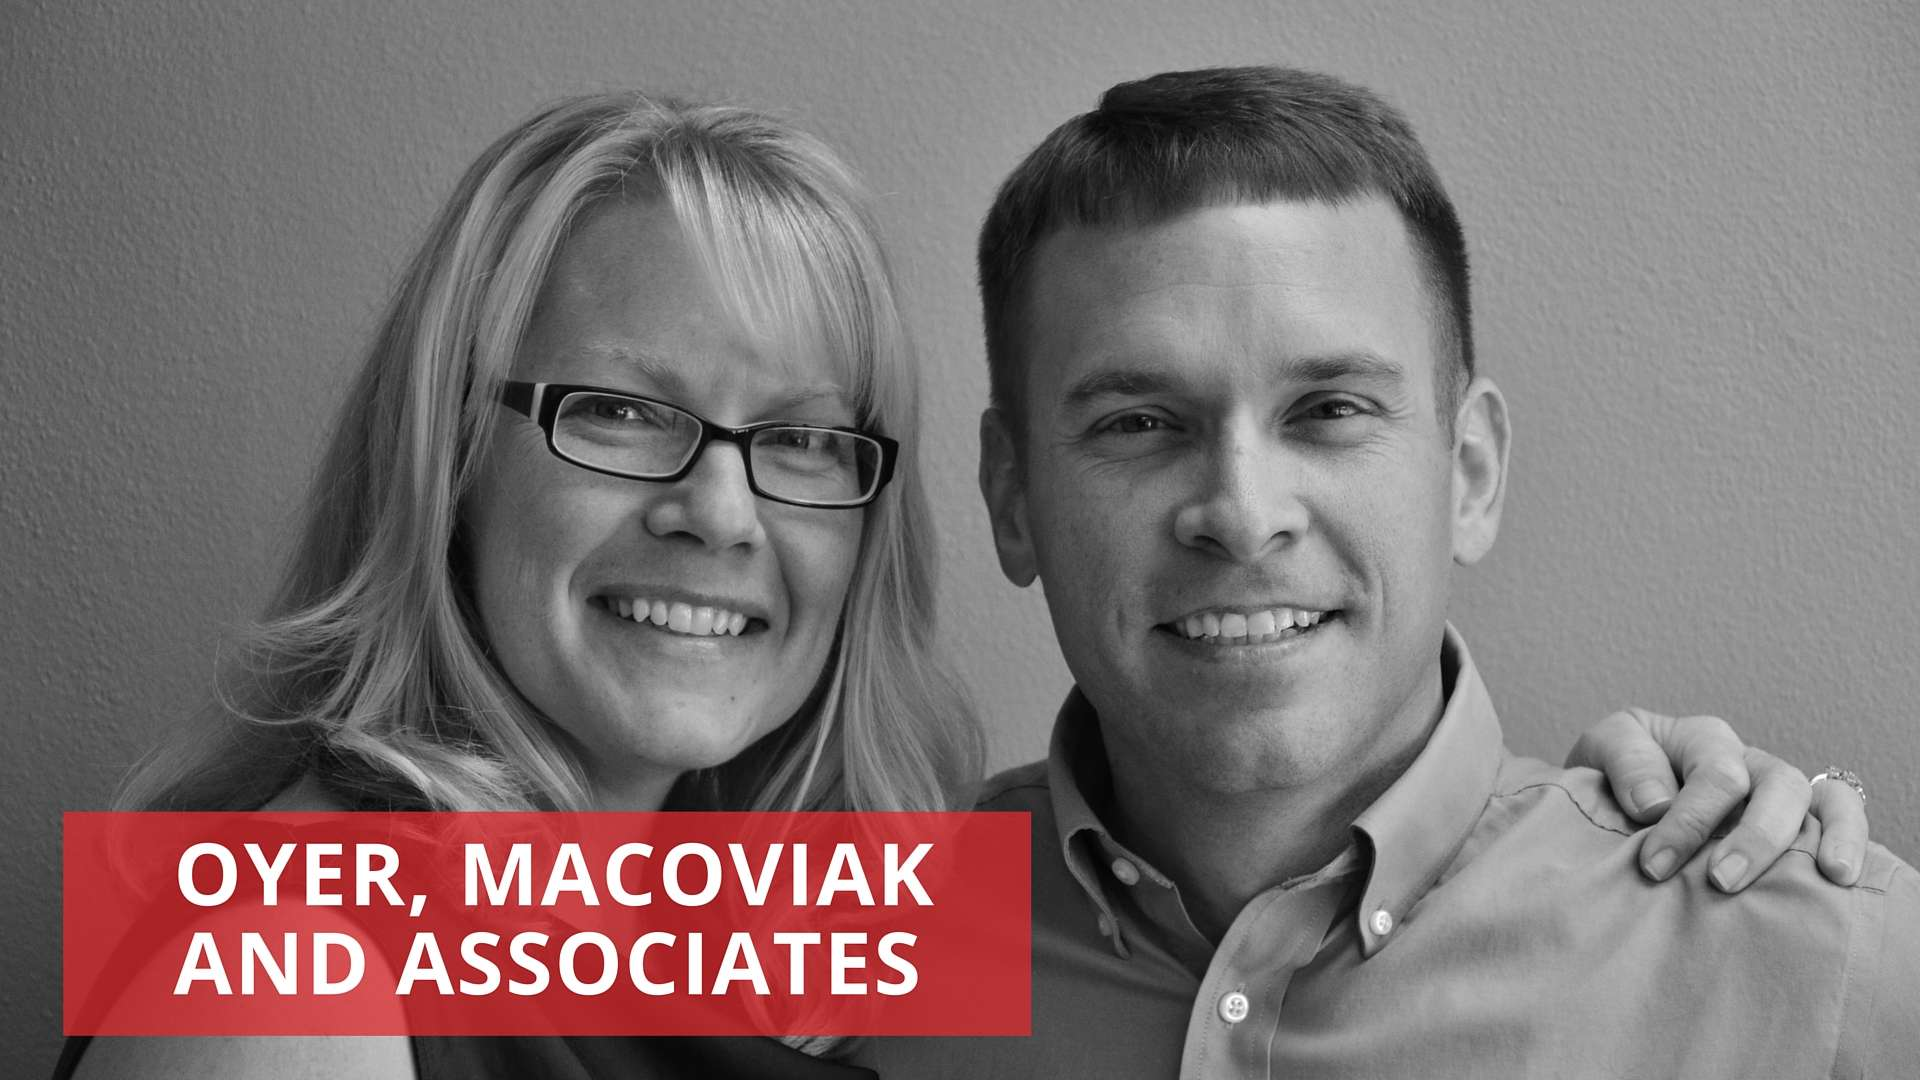 Oyer, Macoviak and Associates